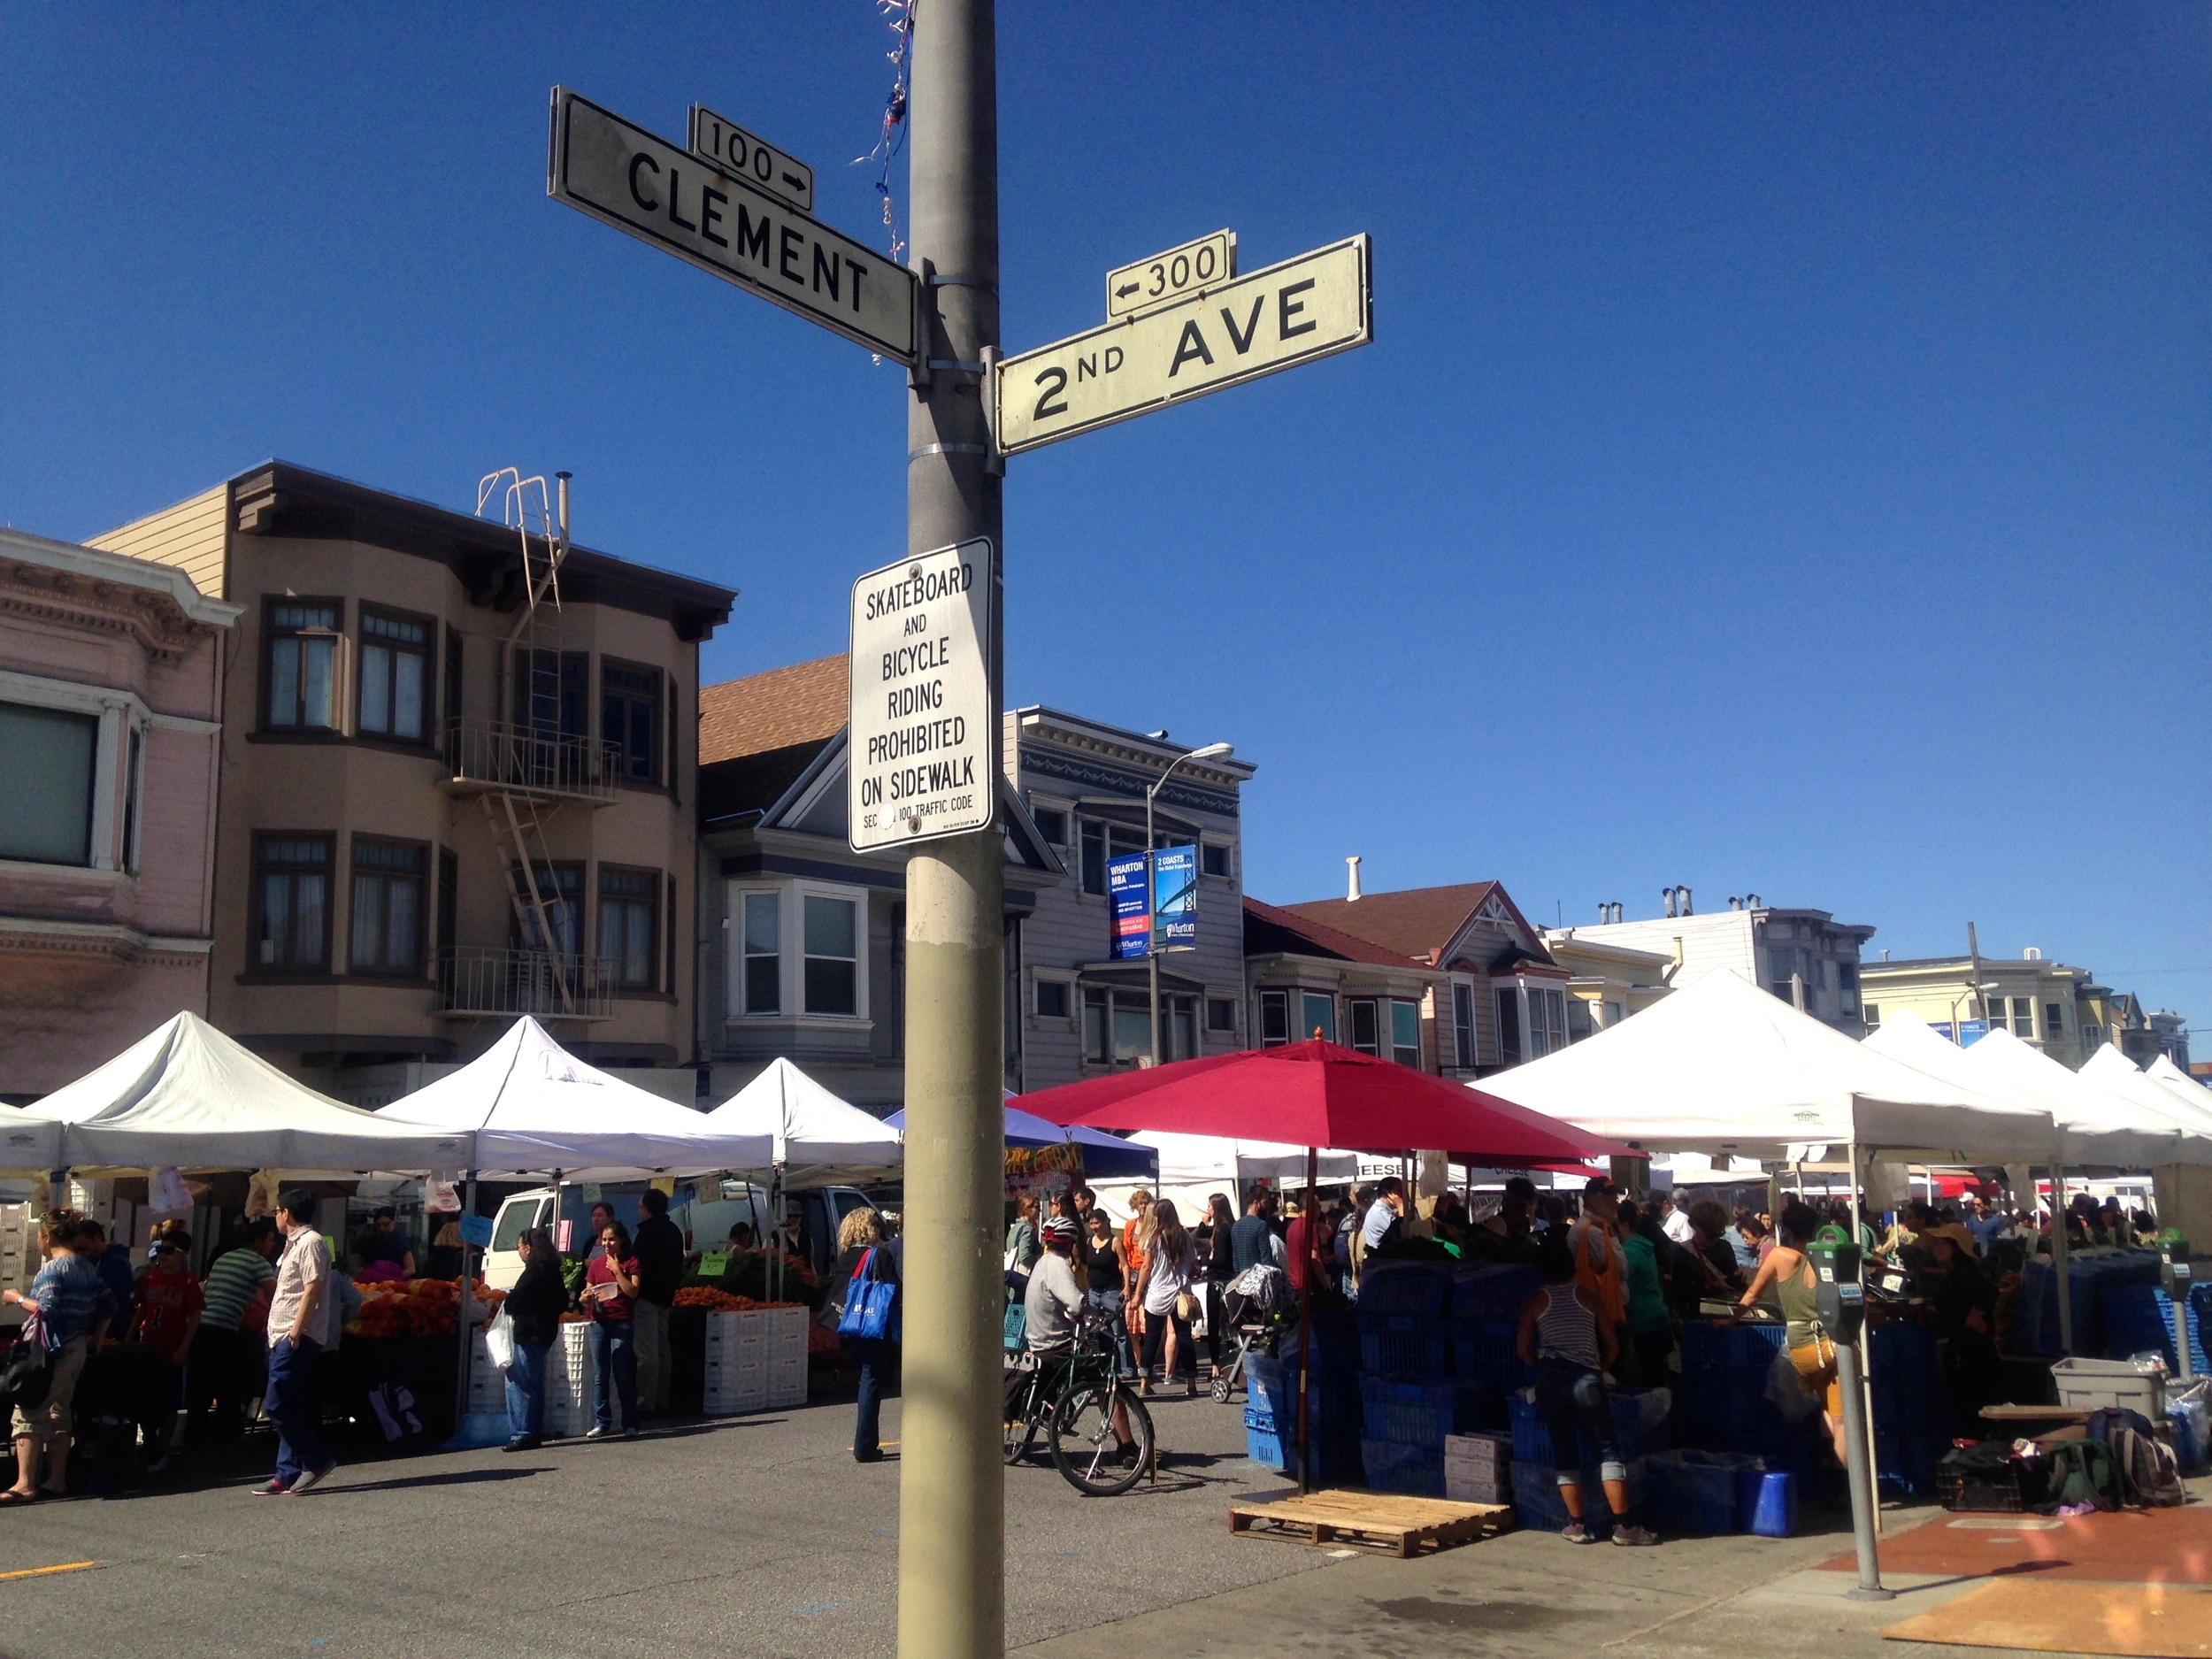 The Clement Street Farmers Market, held every Sunday morning, is a short walk away.